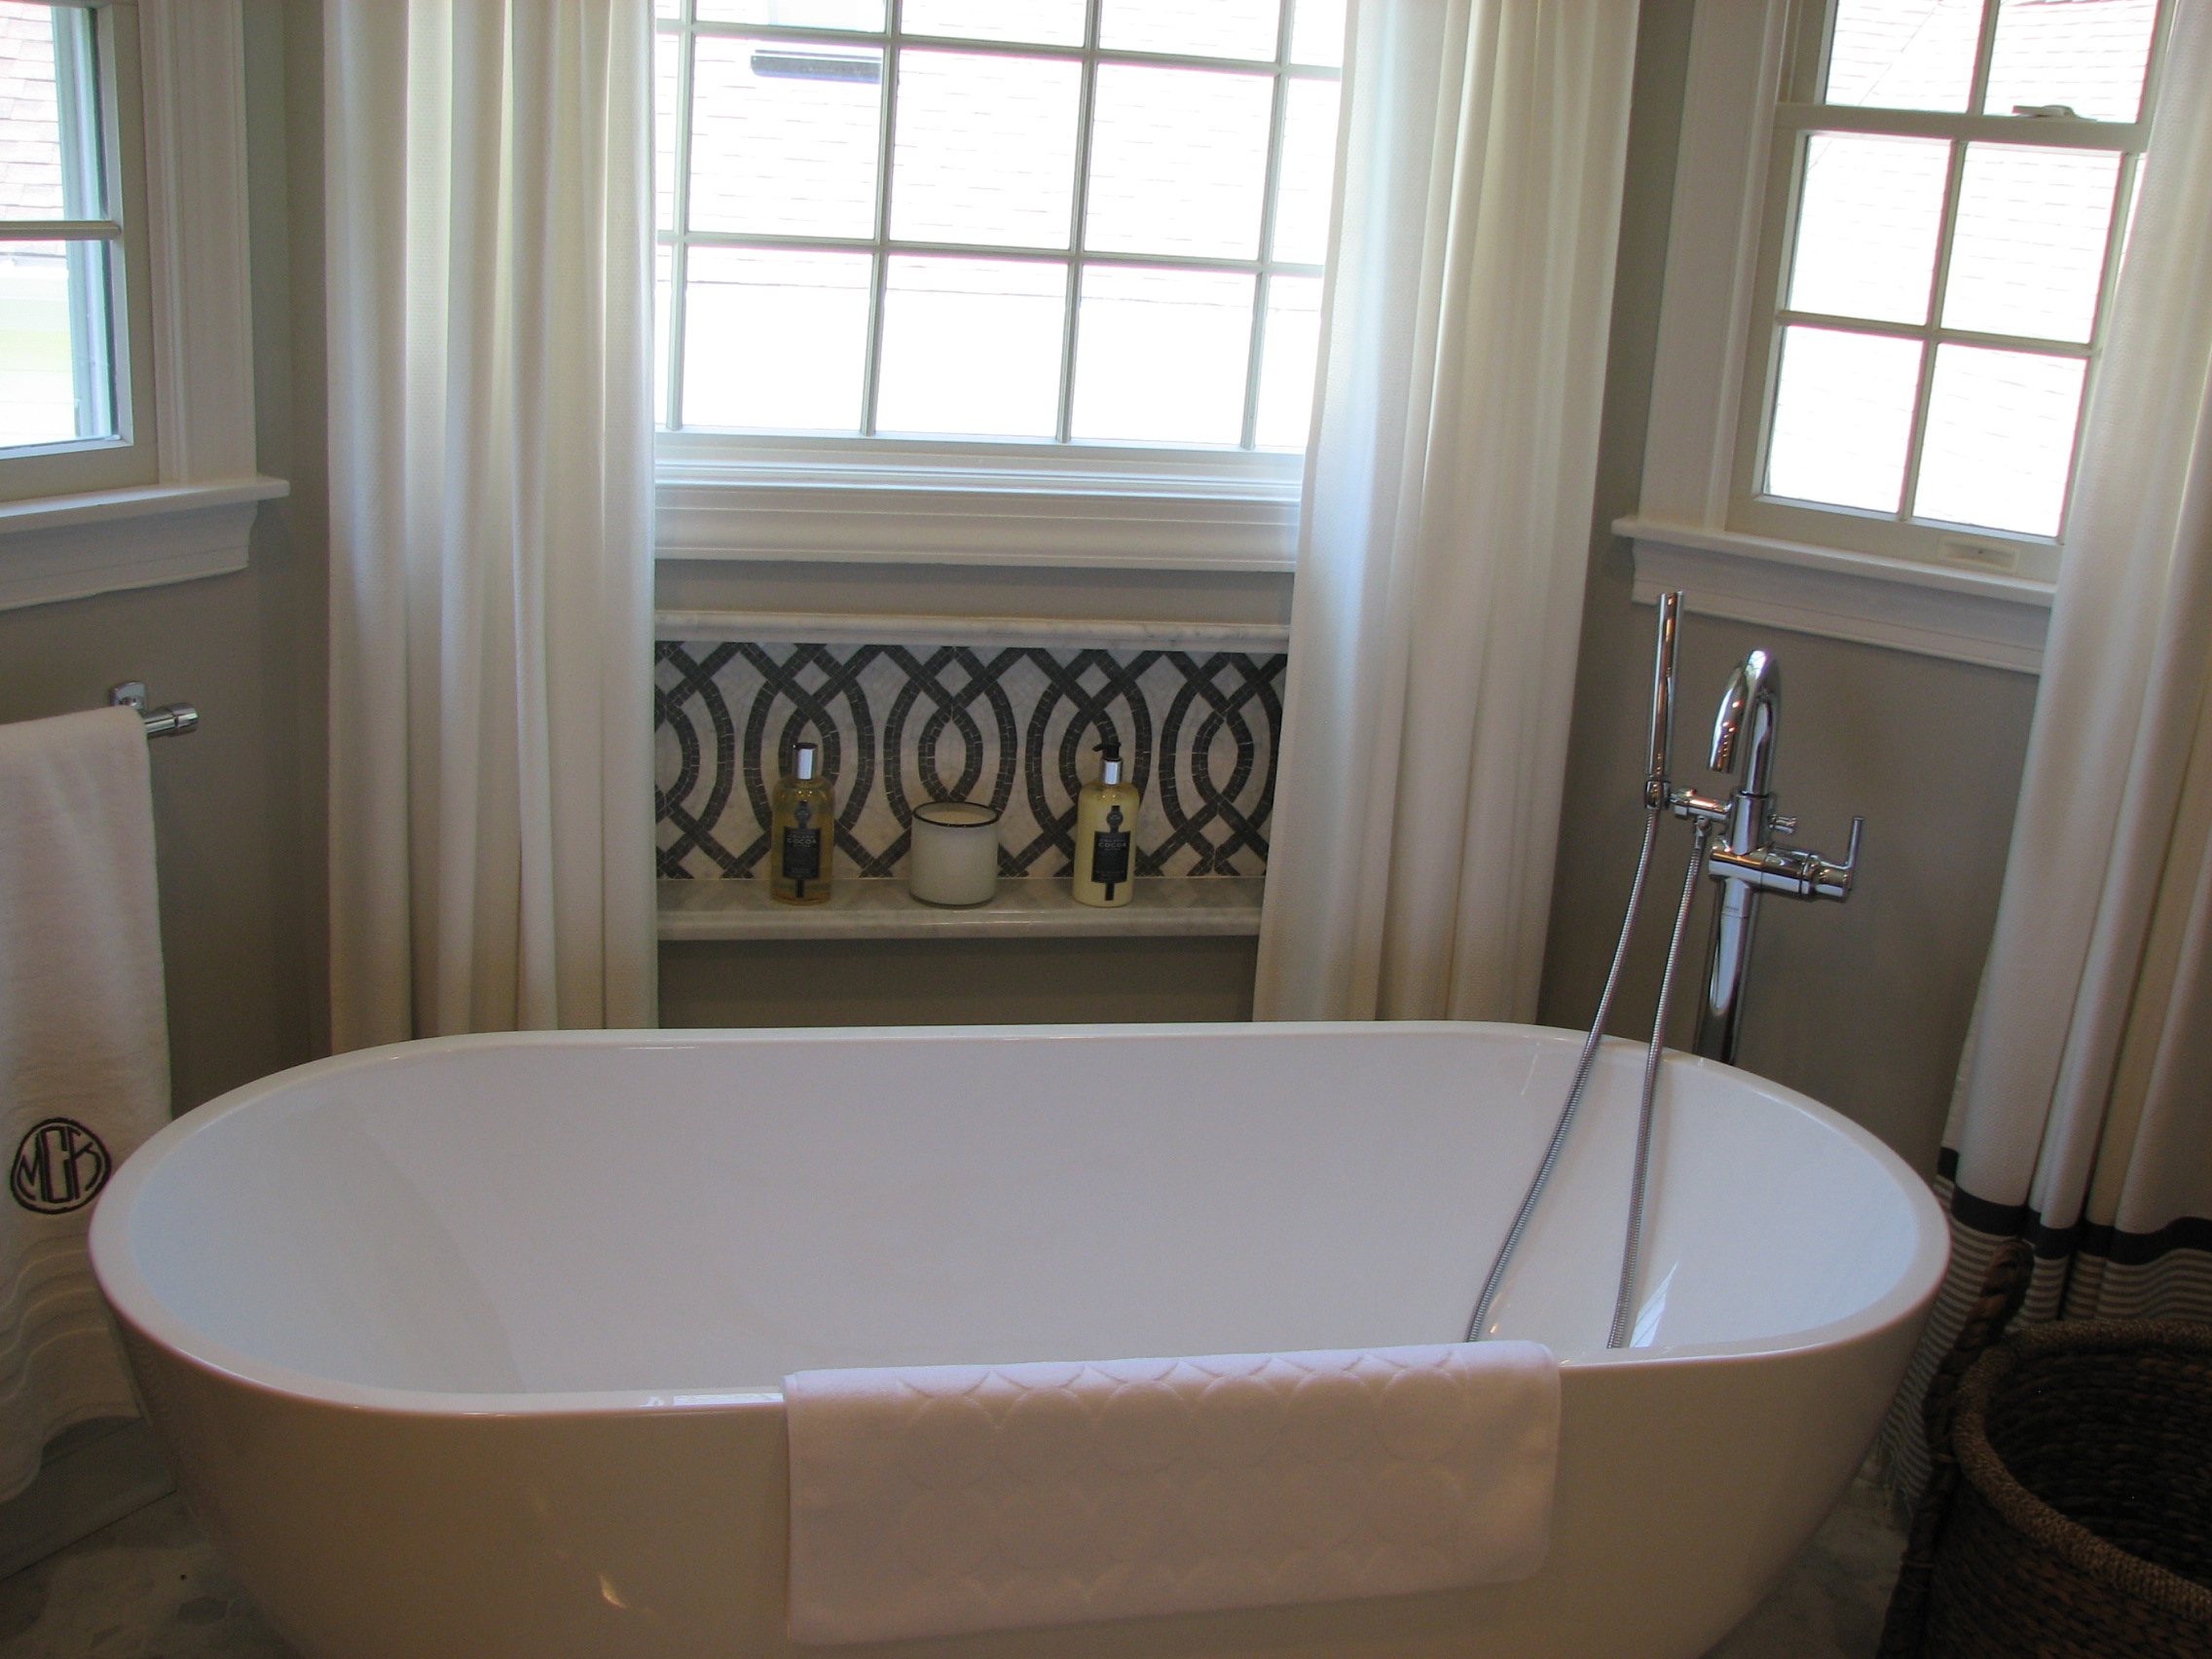 The Basic Bathroom Co. - bathroom remodel with bathtub and shower enclosure – NJ - April 2014